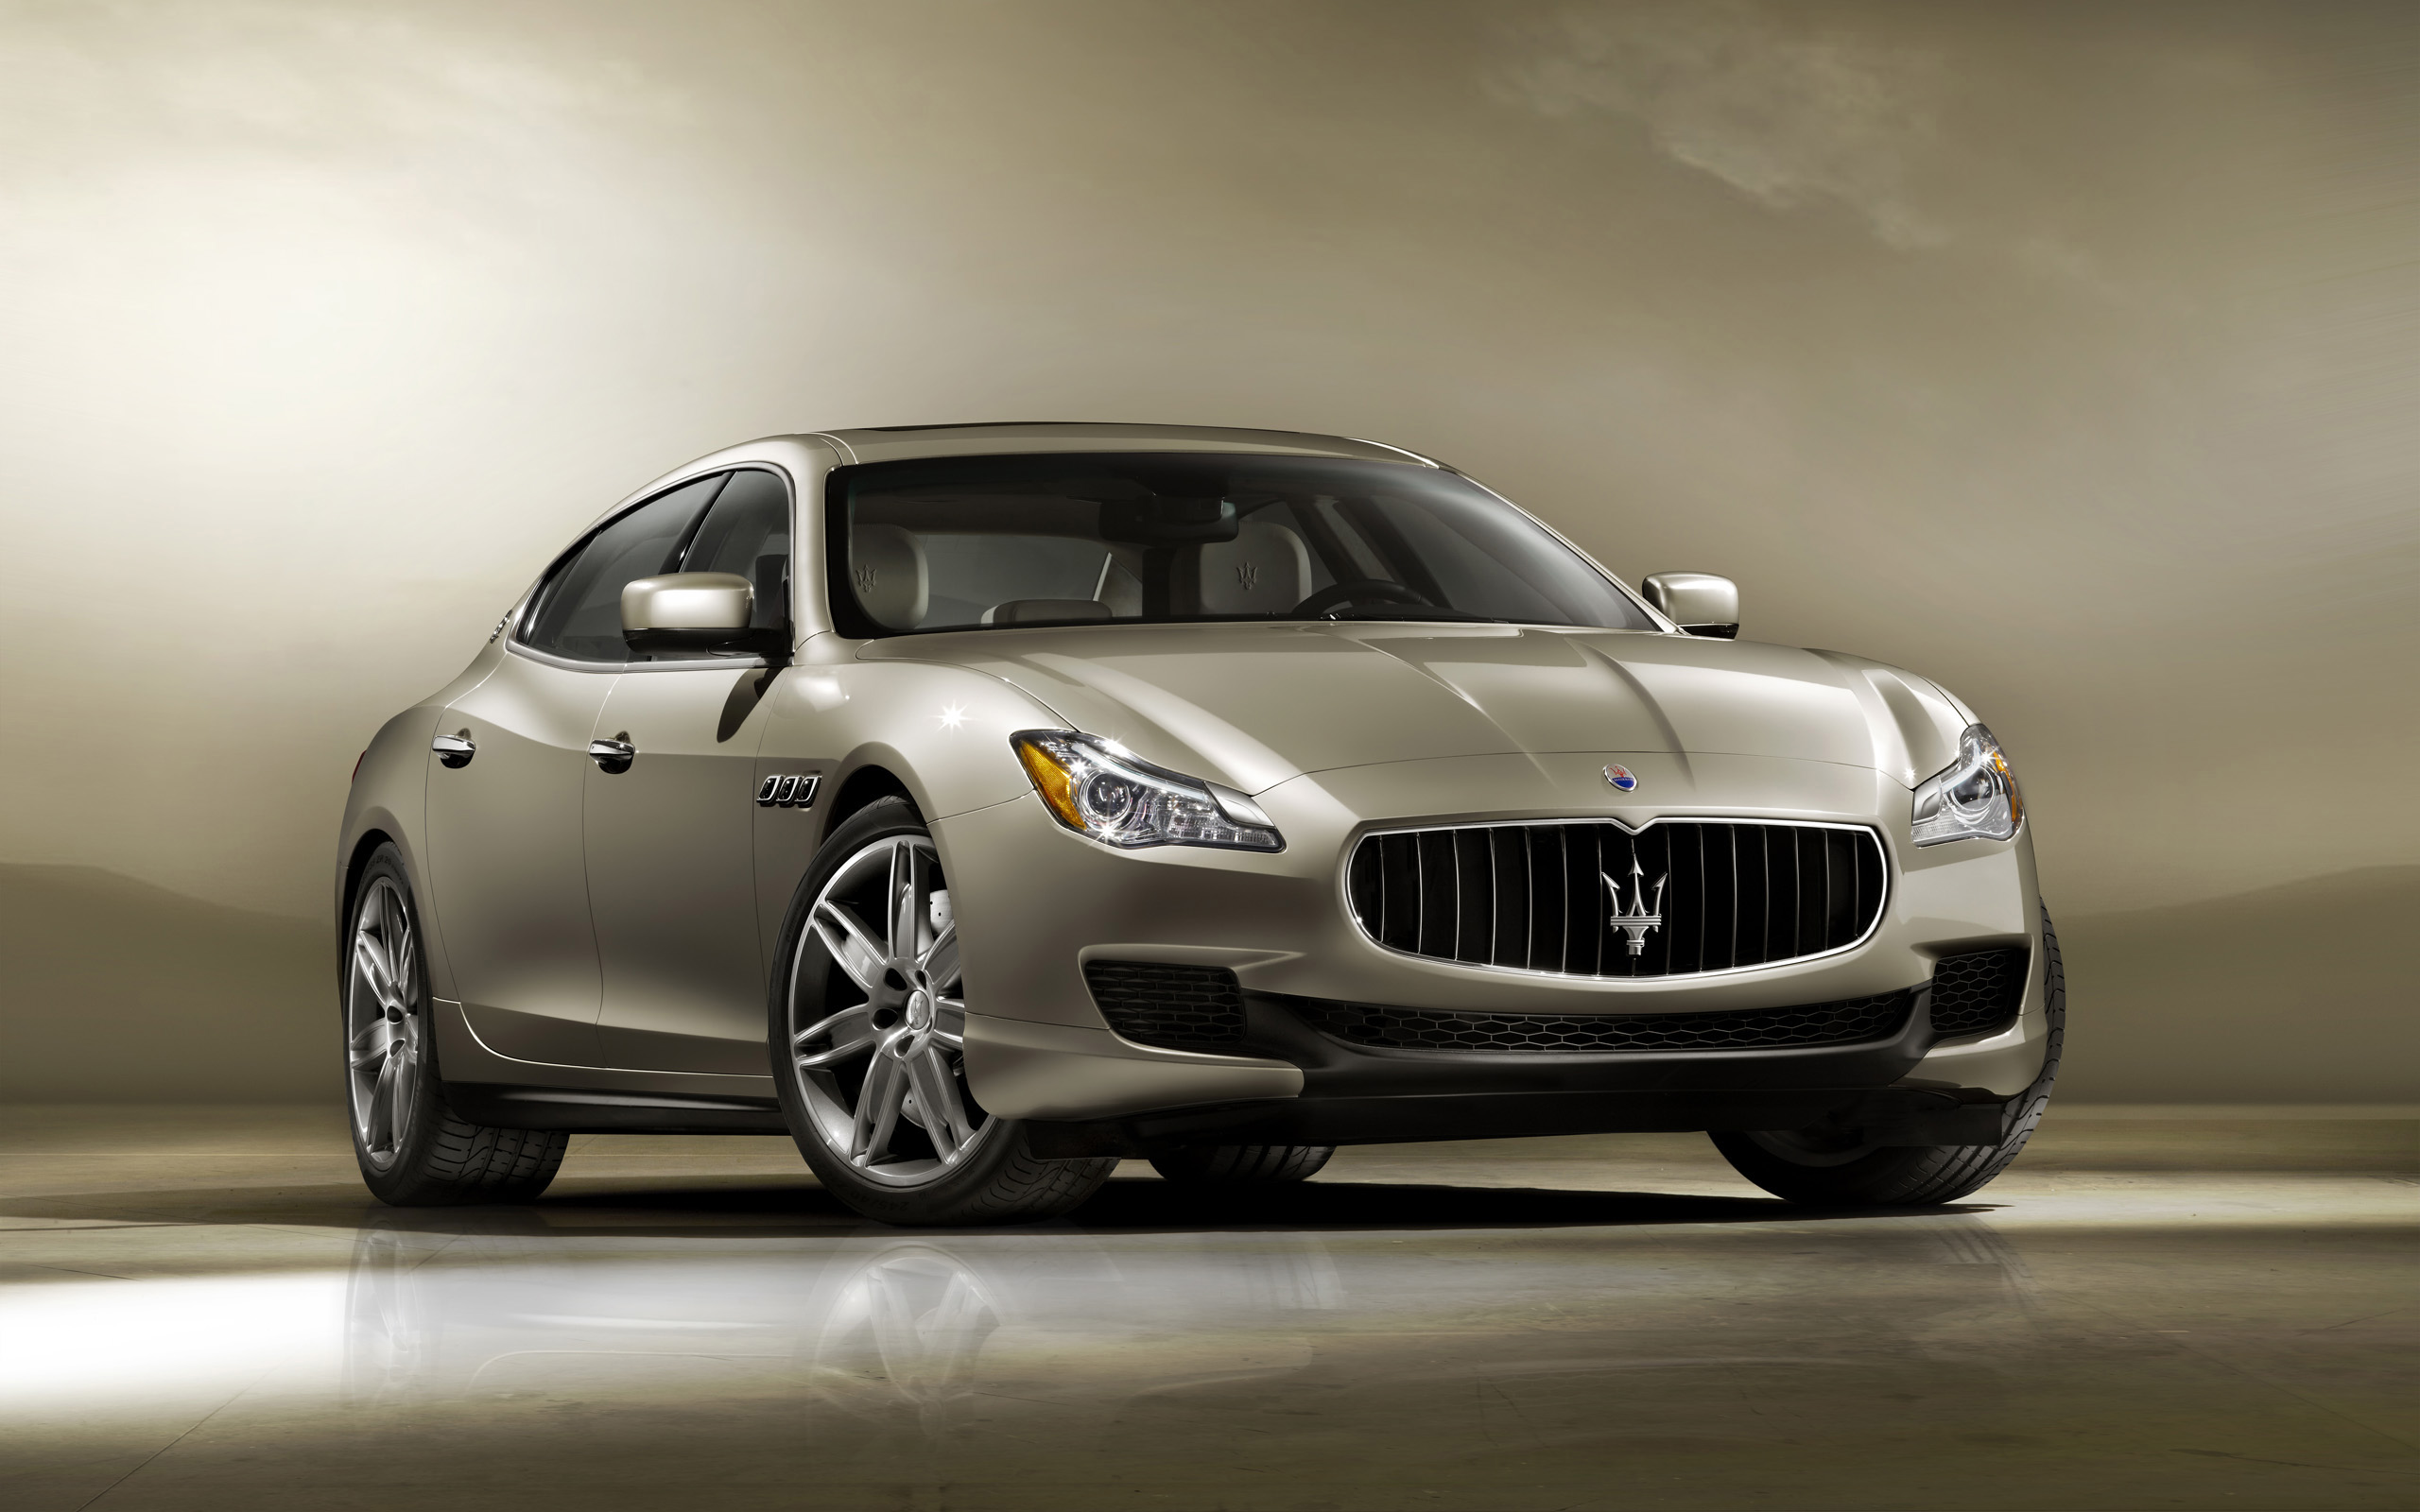 maserati ghibli 2014 wallpaper hd car wallpapers id 3861. Black Bedroom Furniture Sets. Home Design Ideas